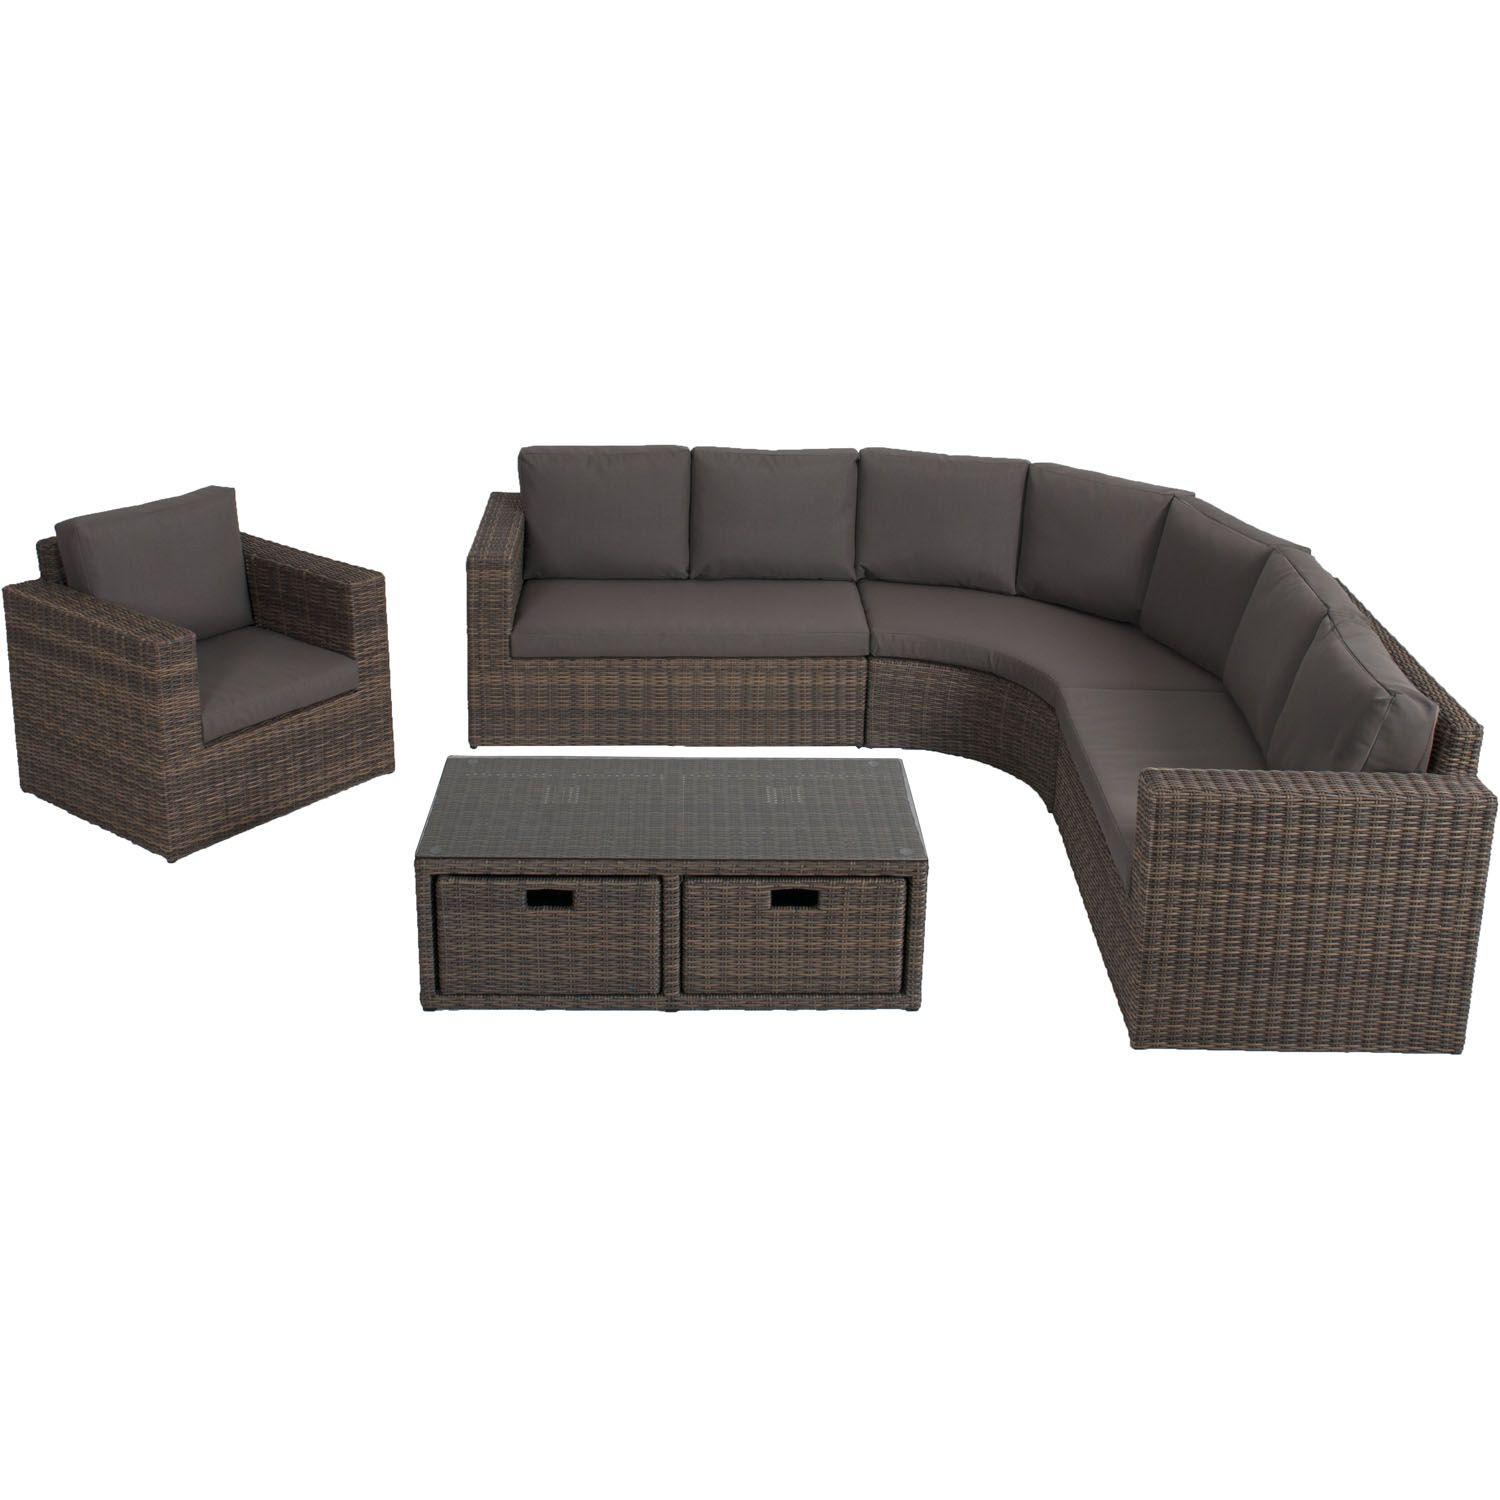 Curved corner couch sectional on the right track but wicker for